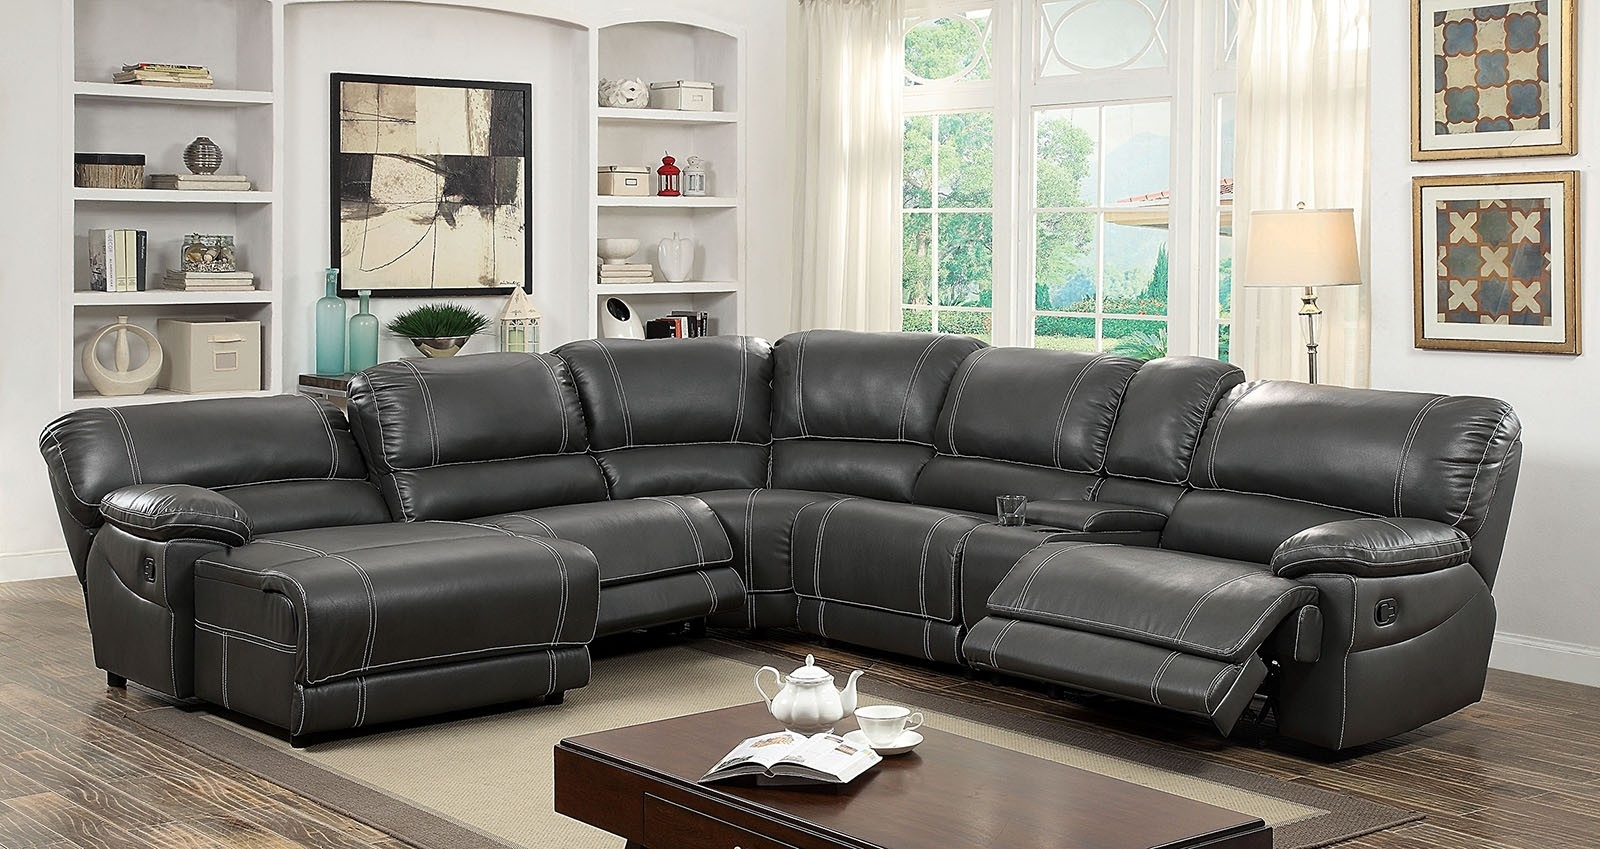 Grey Reclining Sectional - Implantologiabogota.co throughout Denali Light Grey 6 Piece Reclining Sectionals With 2 Power Headrests (Image 13 of 30)